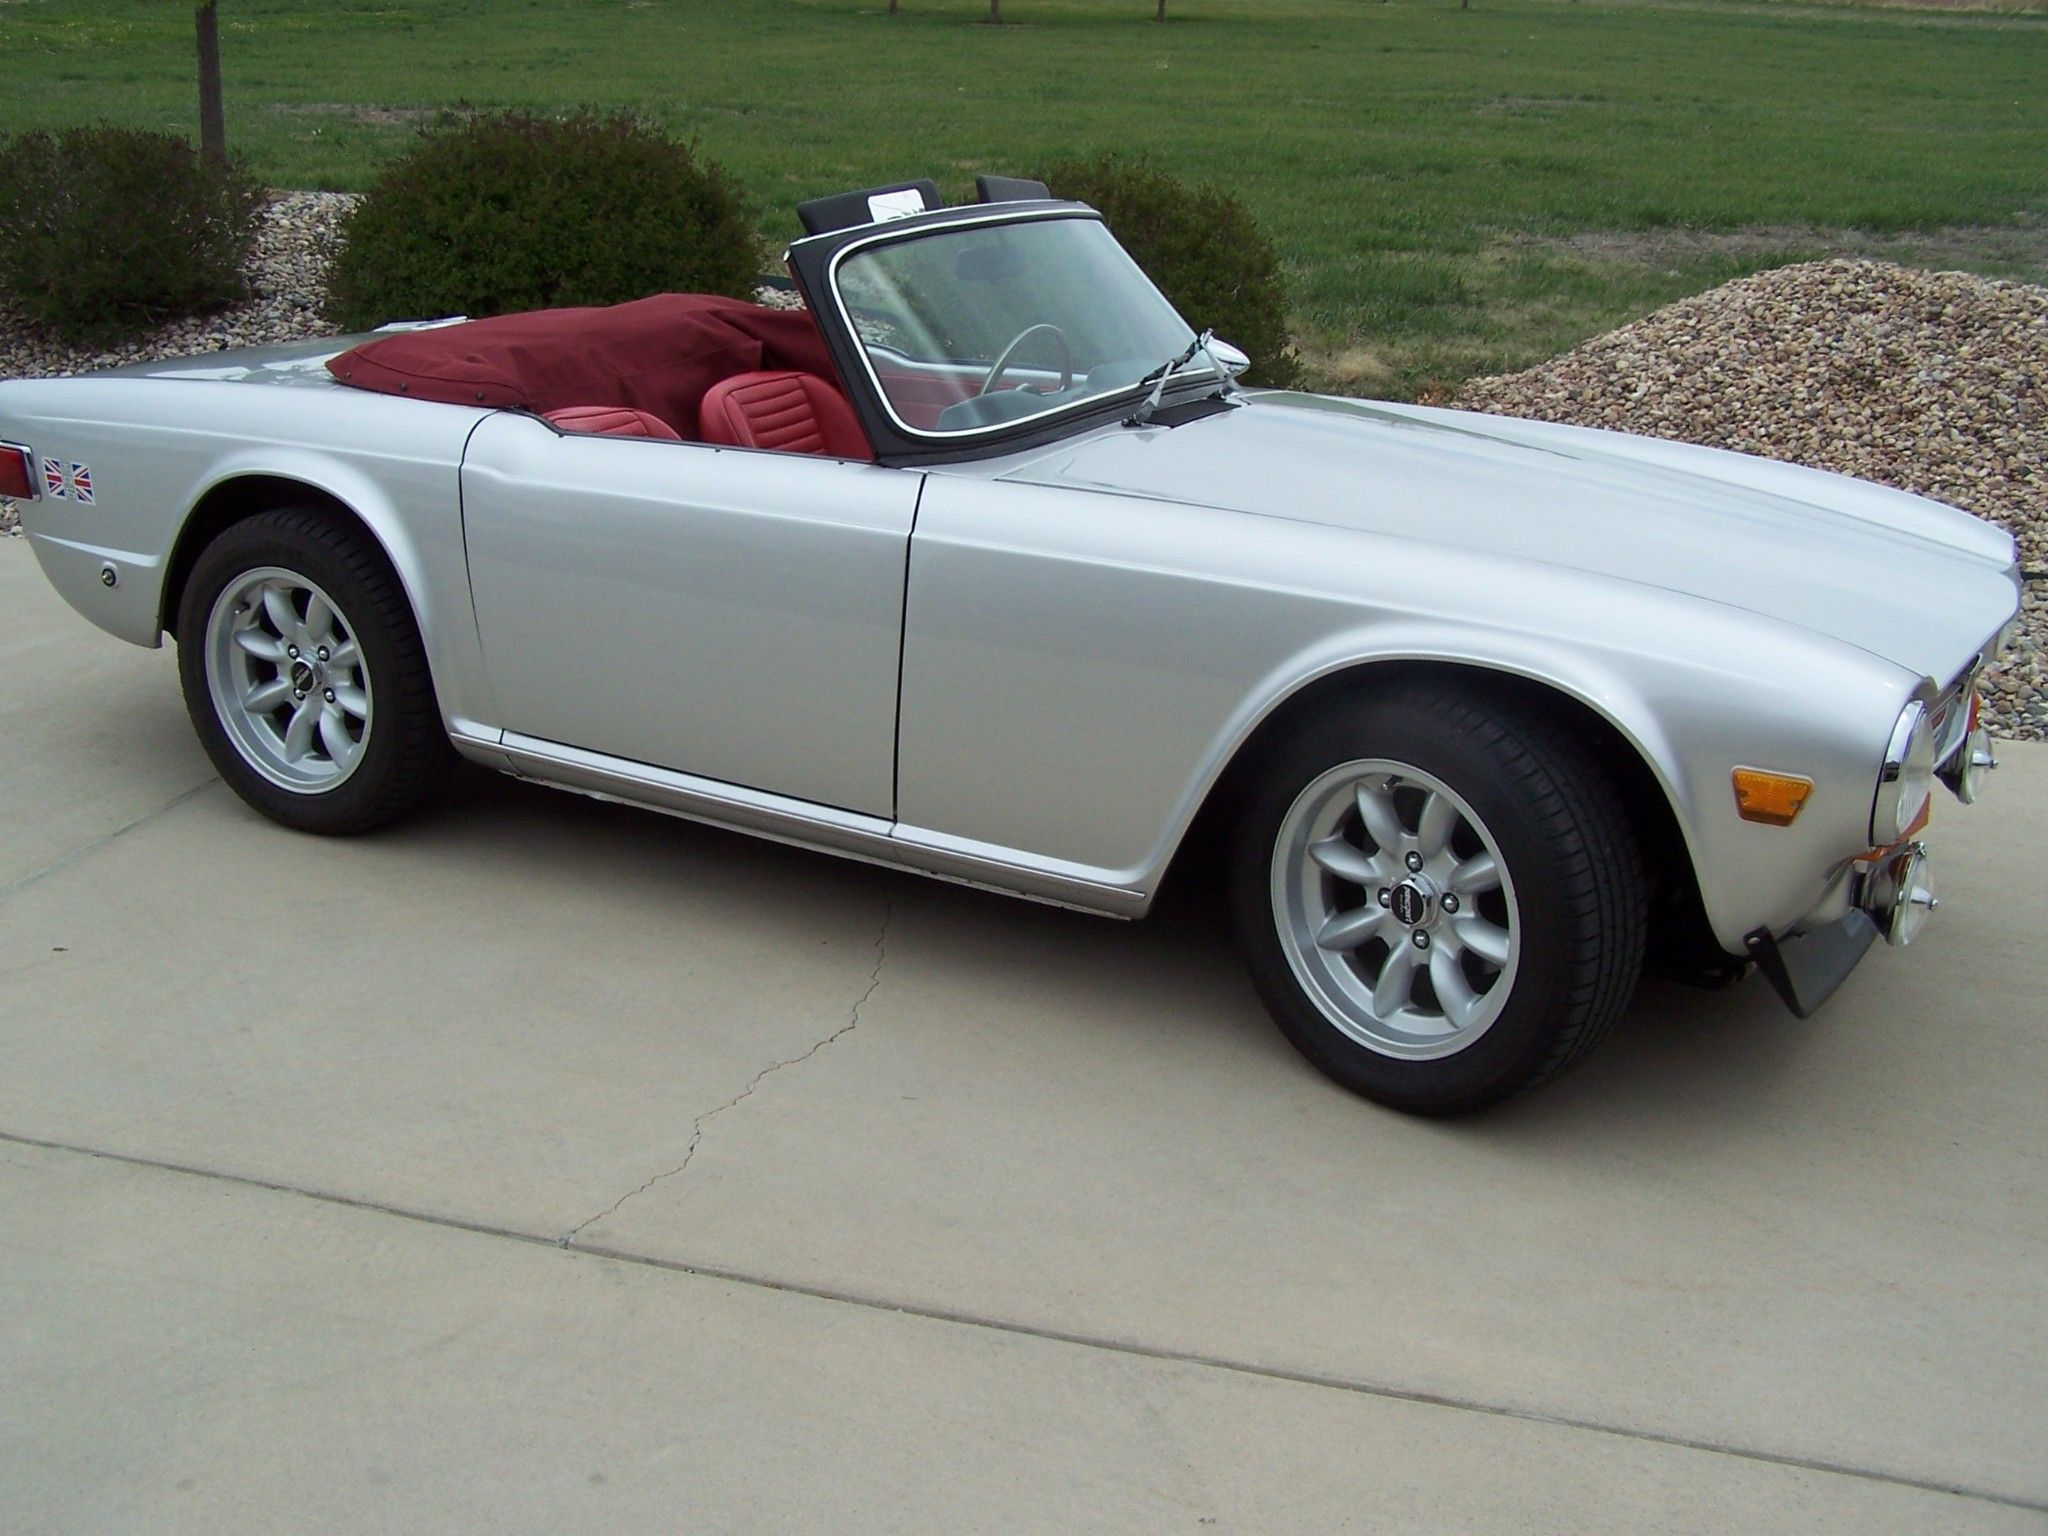 1974 Triumph TR6 for sale on BaT Auctions - sold for $29,750 on May 4, 2017 (Lot #4,082) | Bring a Trailer